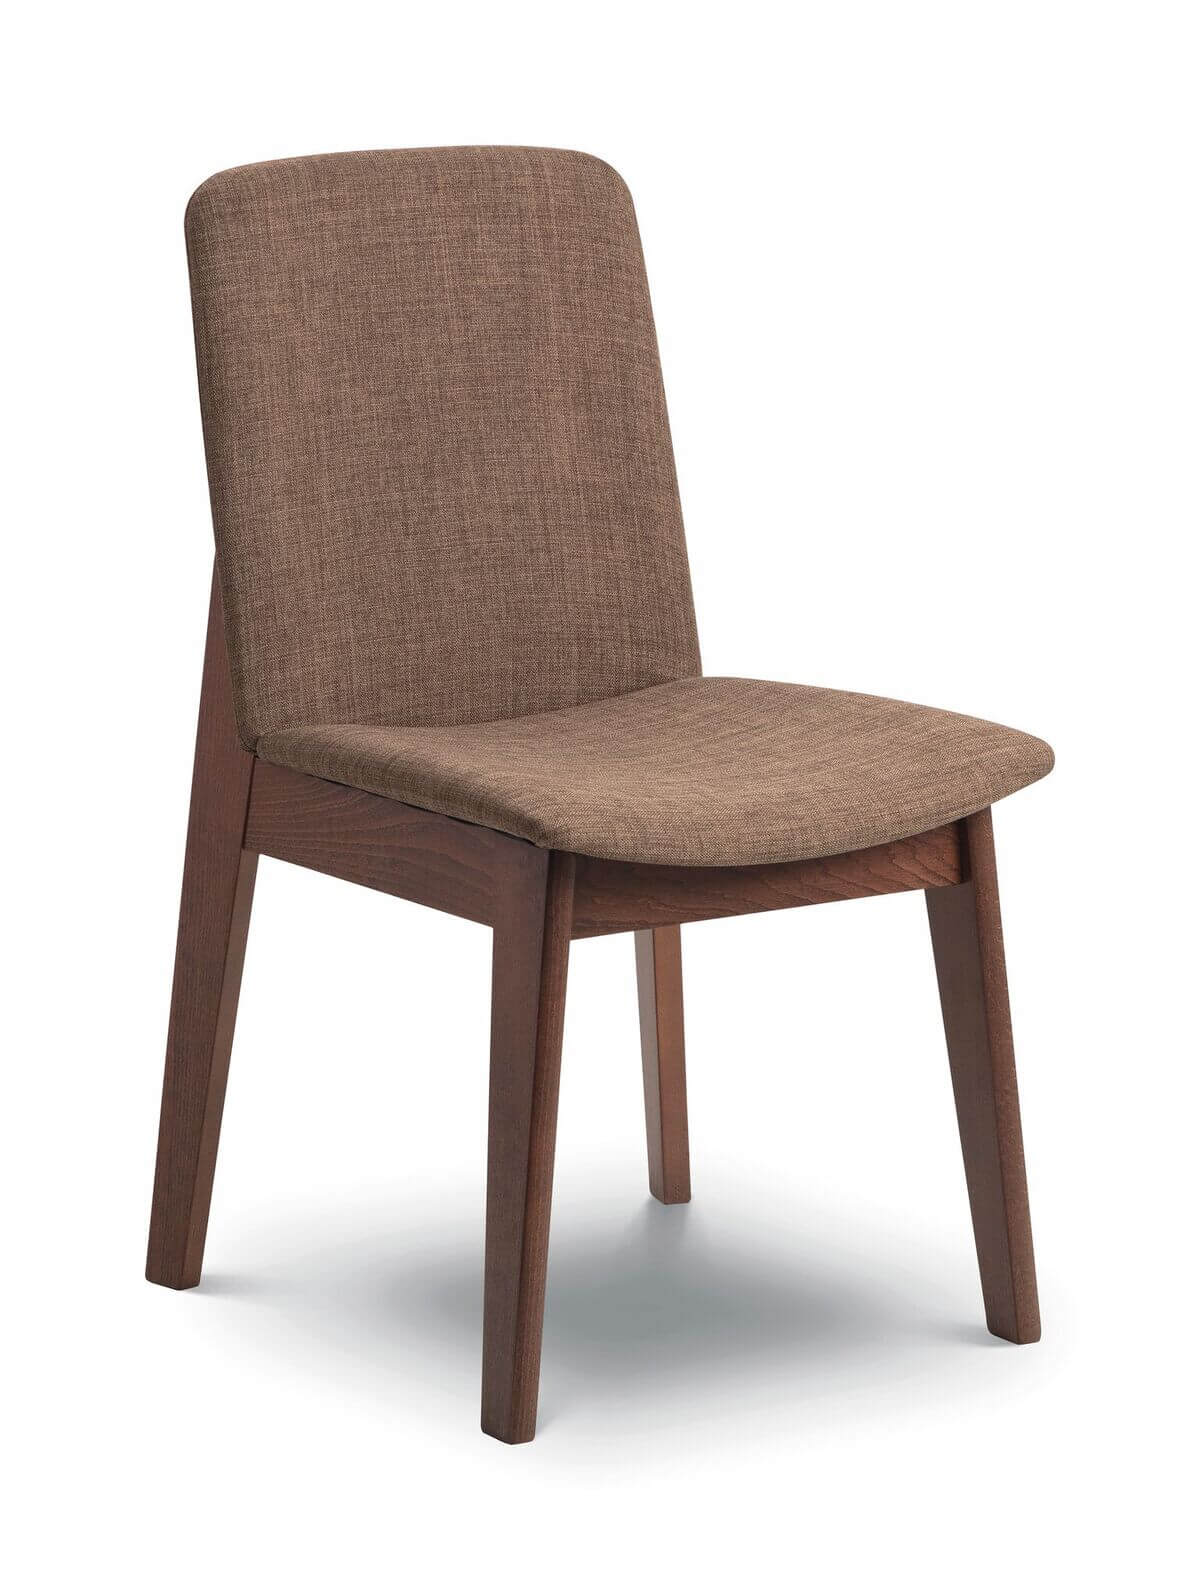 Kensington Chair